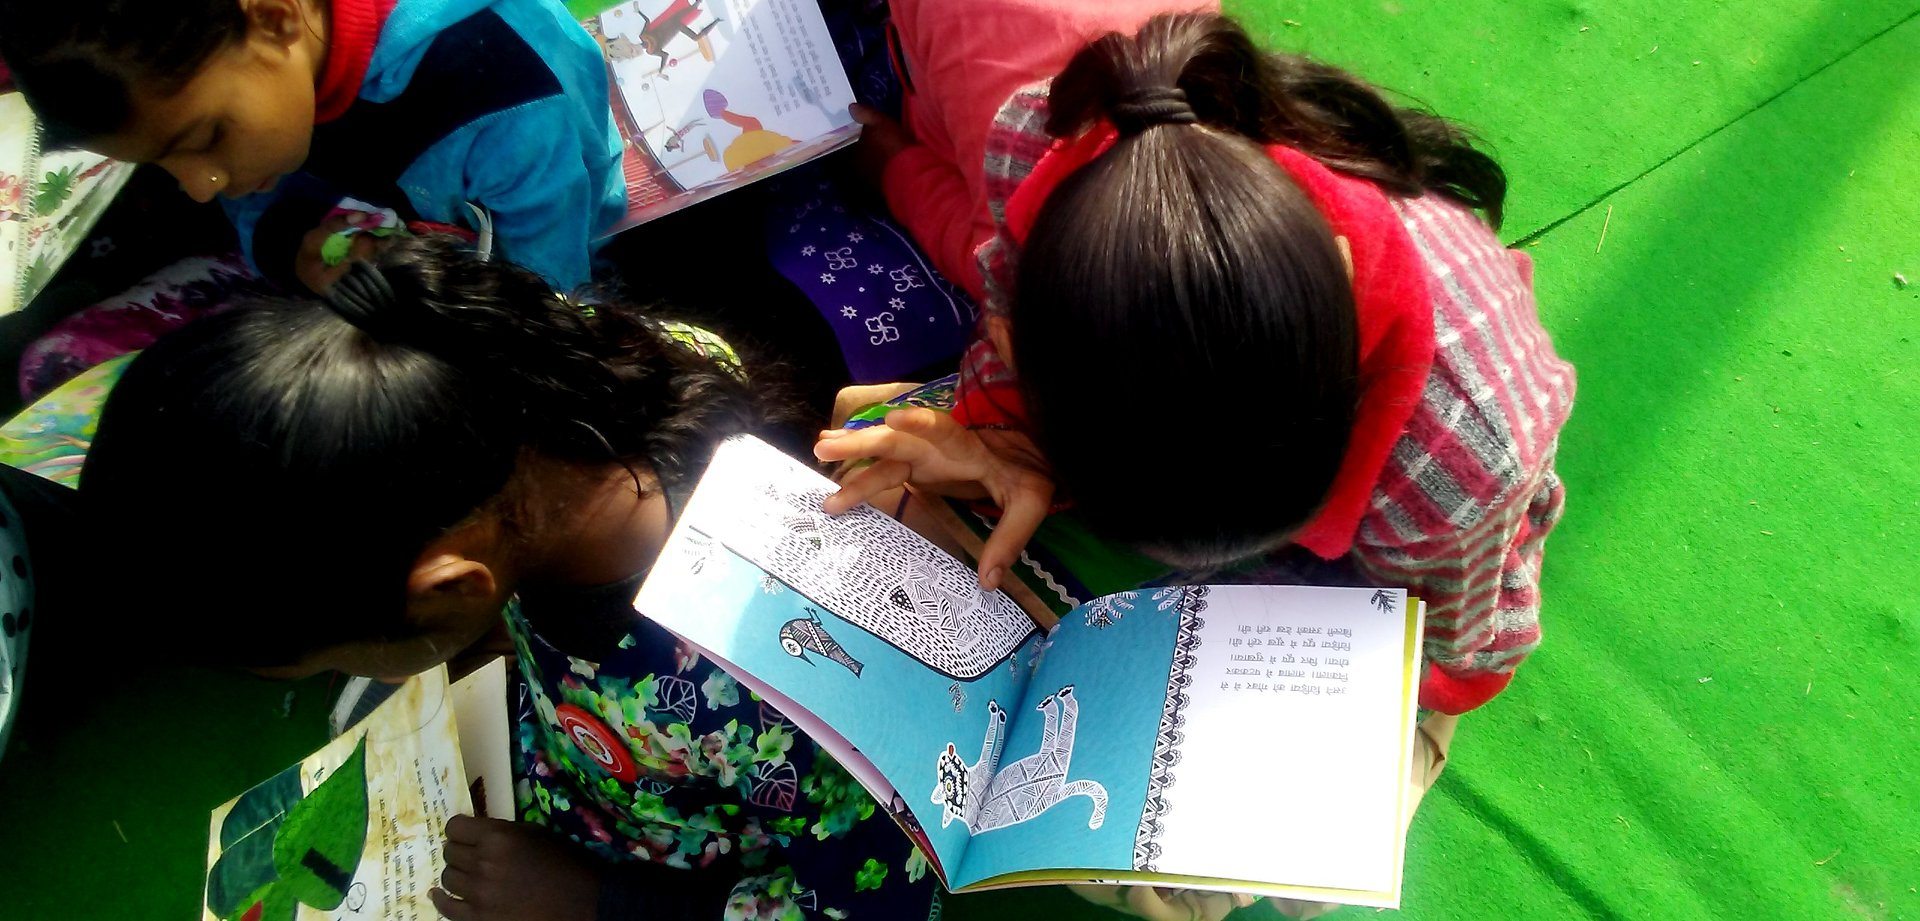 FICA LIBRARY AT BETI SHAKTI ABHIYAN MELA | DAY-LONG READING AND CRAFTS SESSION